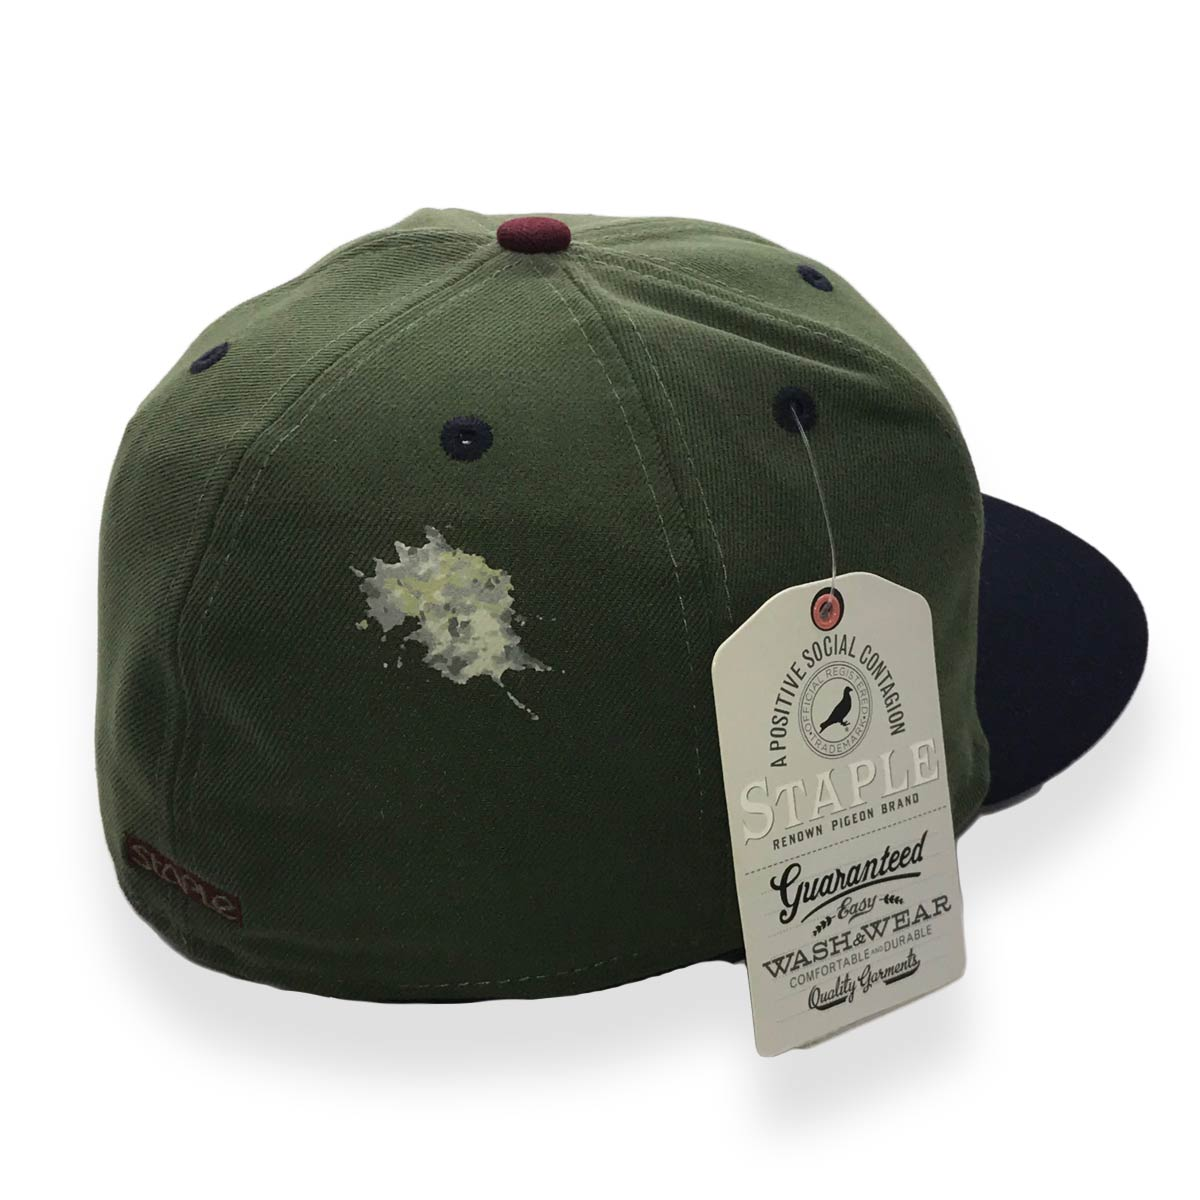 STAPLE X NEW ERA PIGEON 59FIFTY OLIVE MENS FITTED CAP - MyCraze cad520365a05